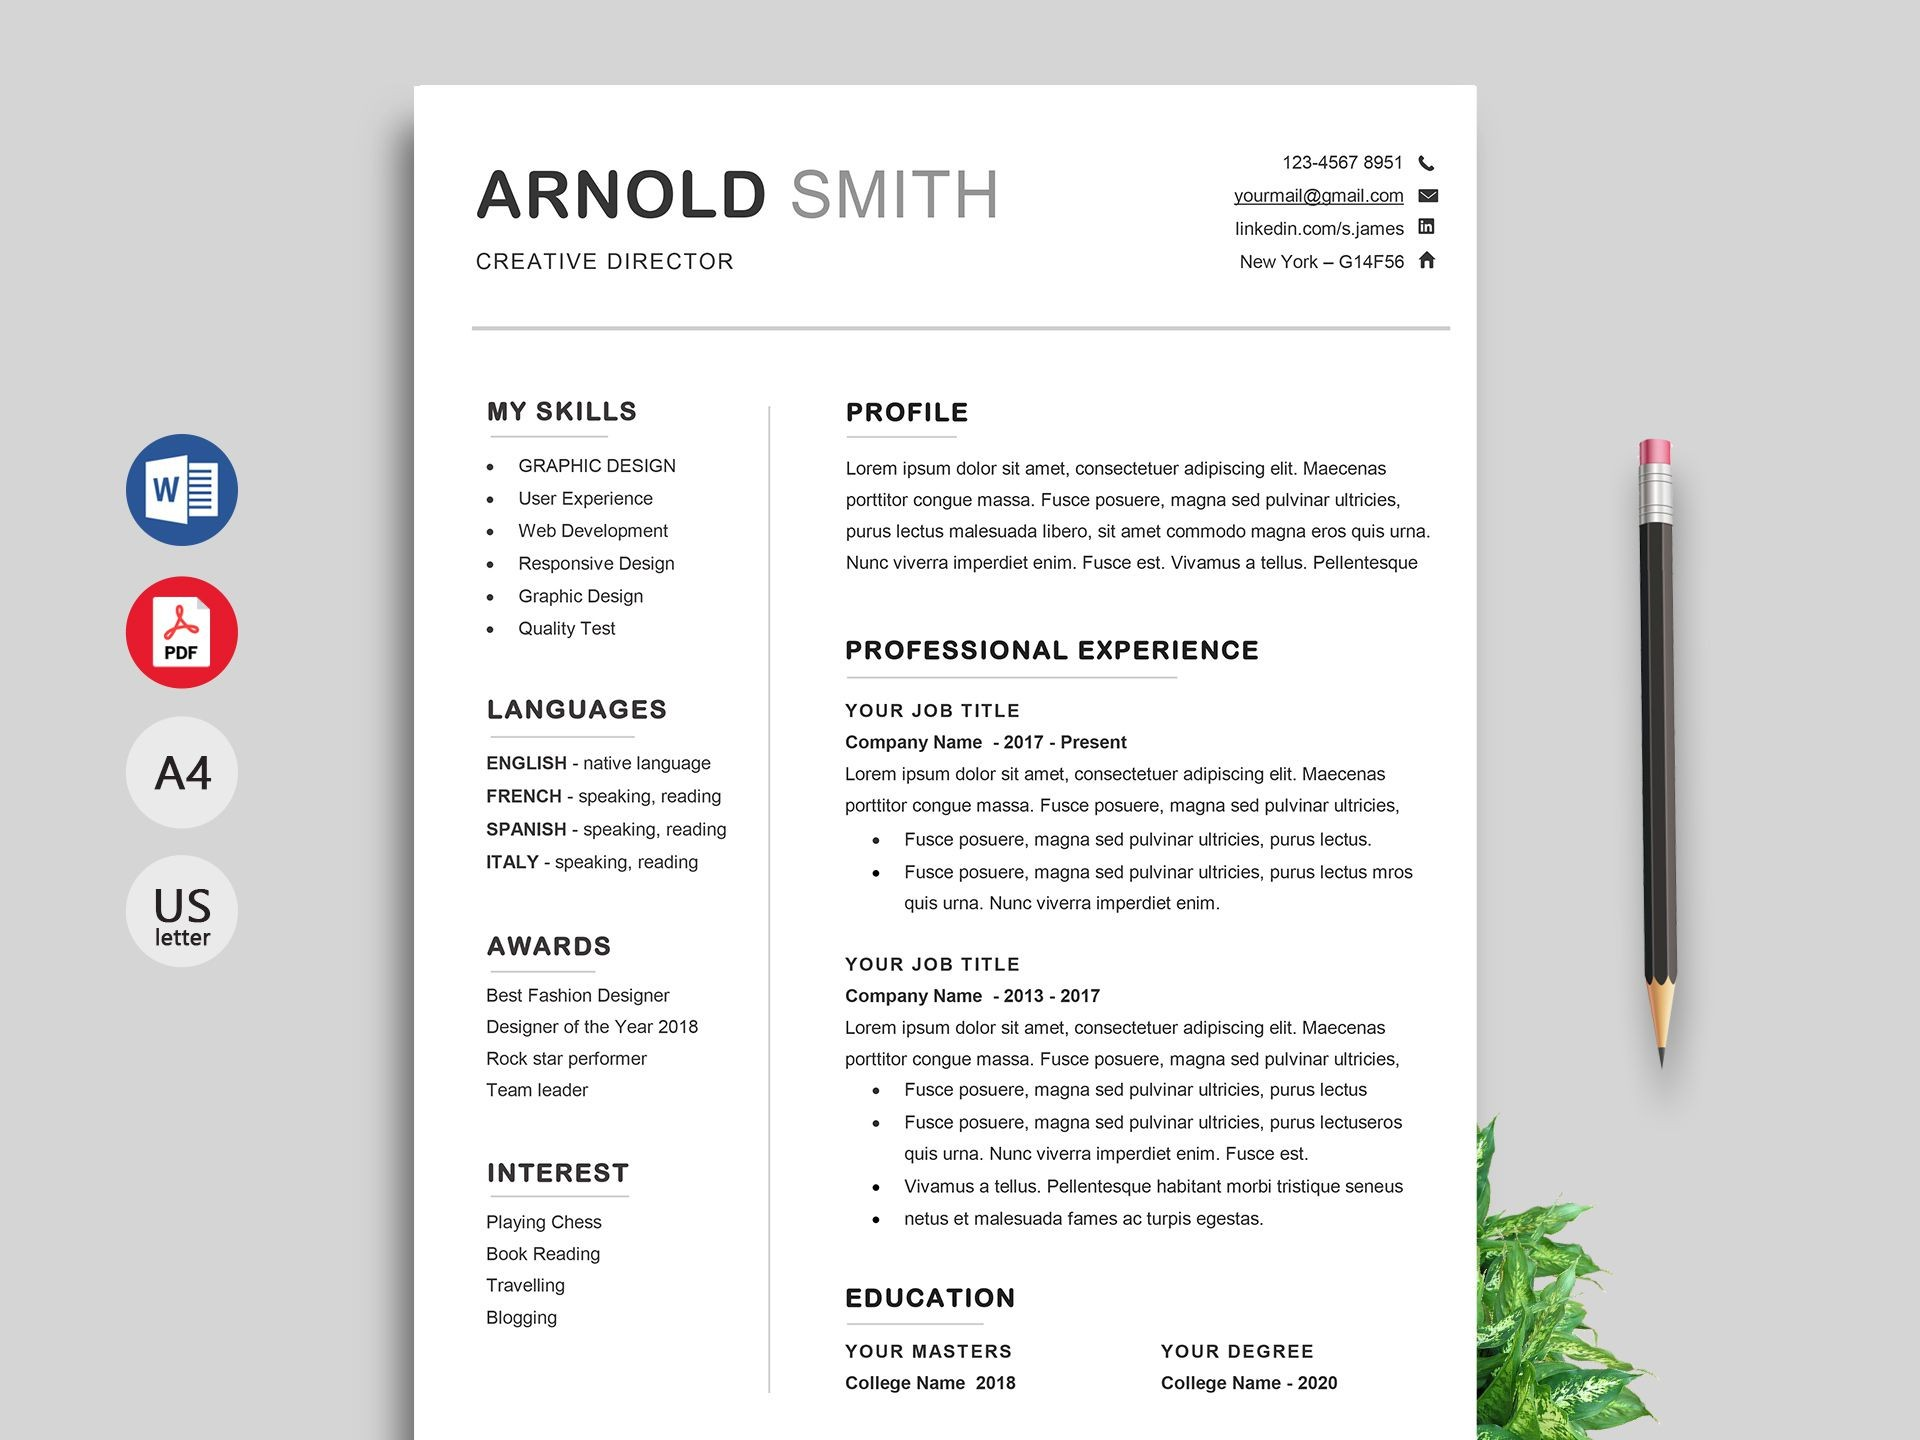 002 Rare Resume Template On Word Highest Quality  2007 Download 2016 How To Get 20101920